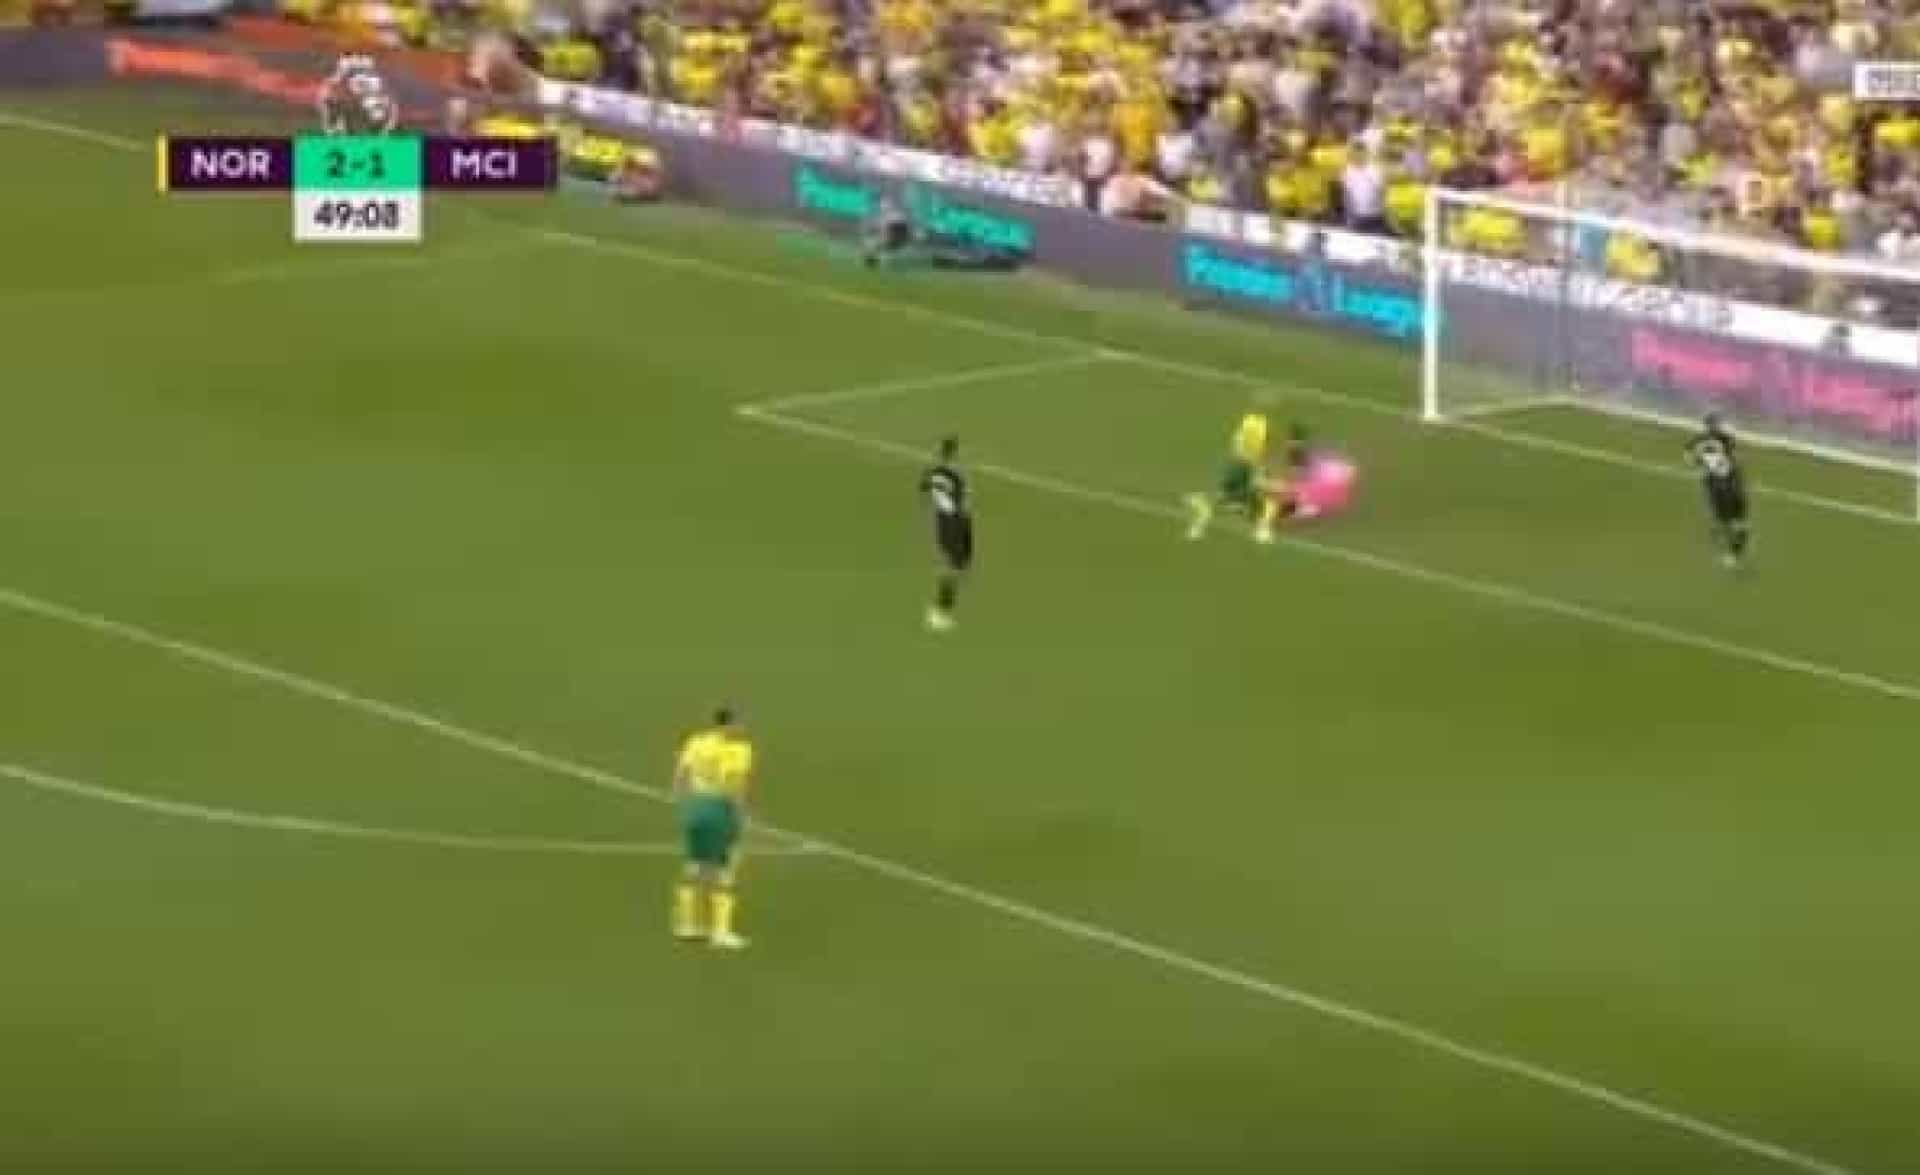 O golo do Norwich que demonstrou por completo que o City andou aos papéis